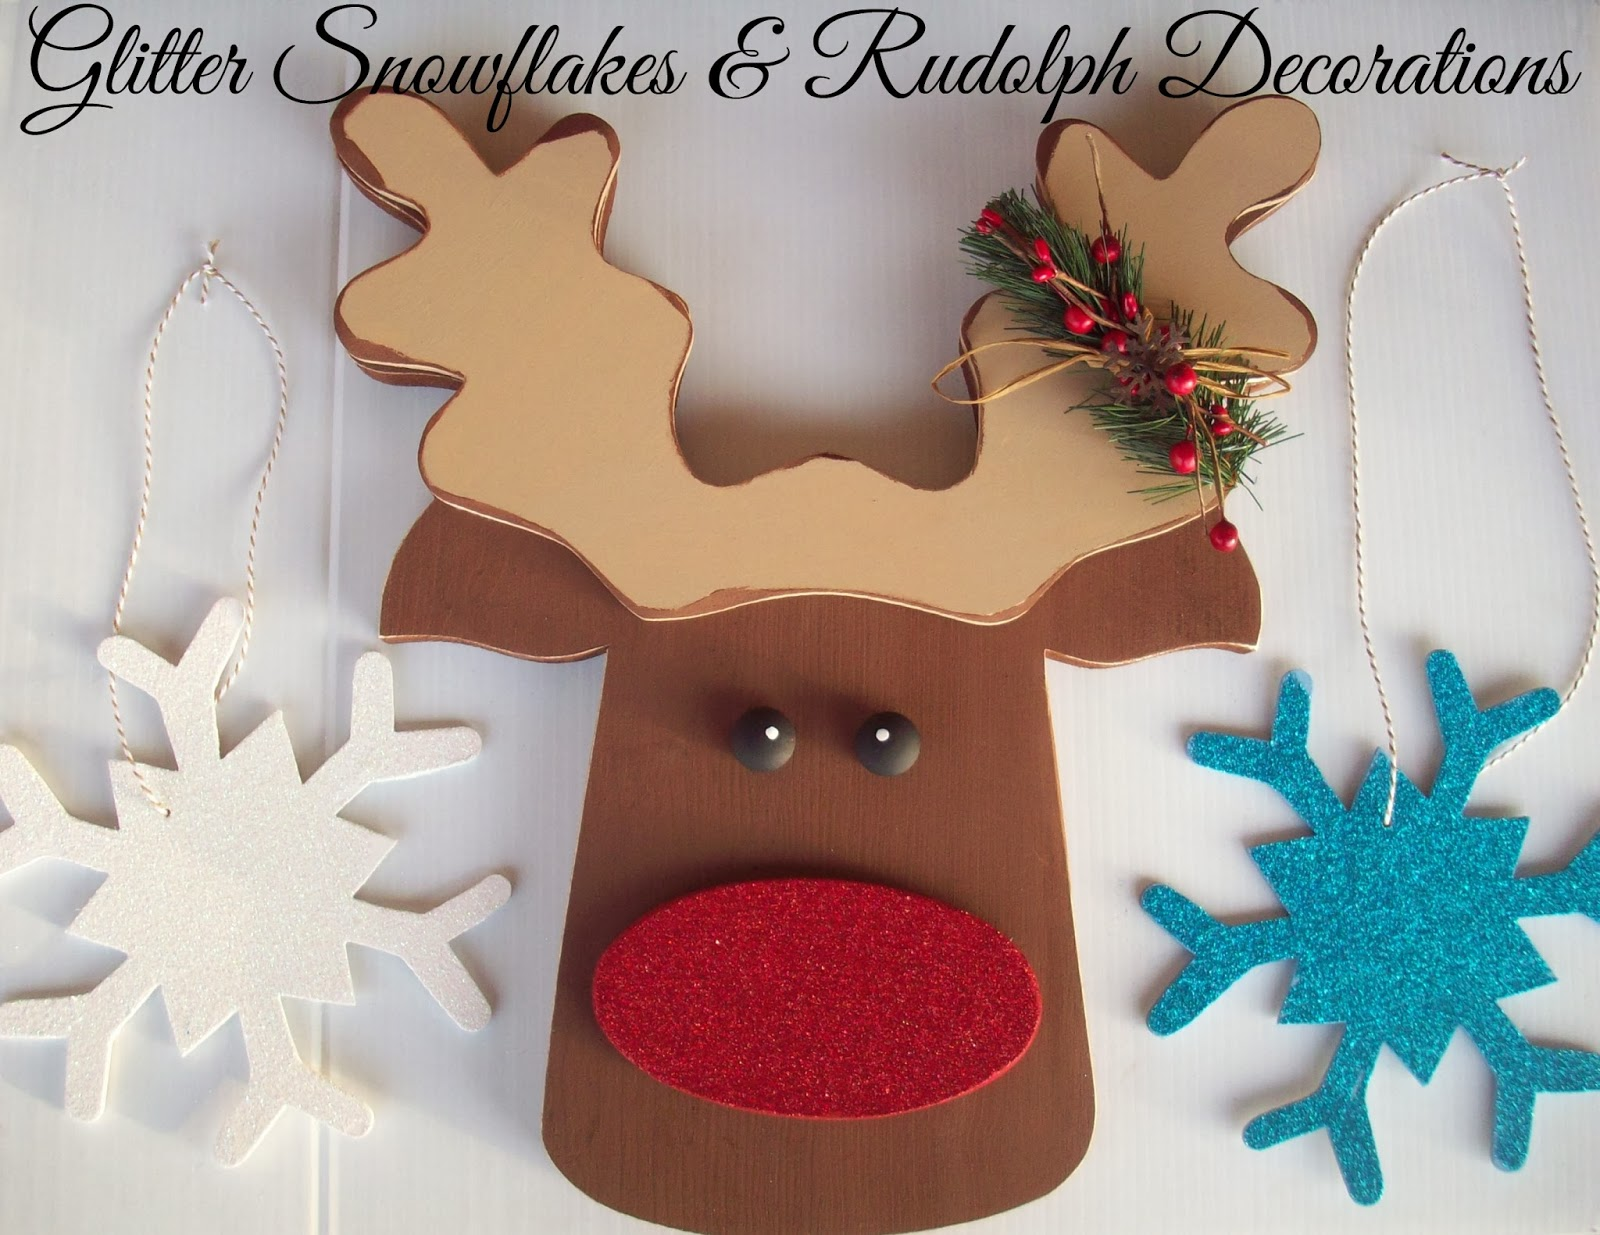 Rudolph Christmas Decorations.Glitter Snowflakes And Rudolph Christmas Decorations